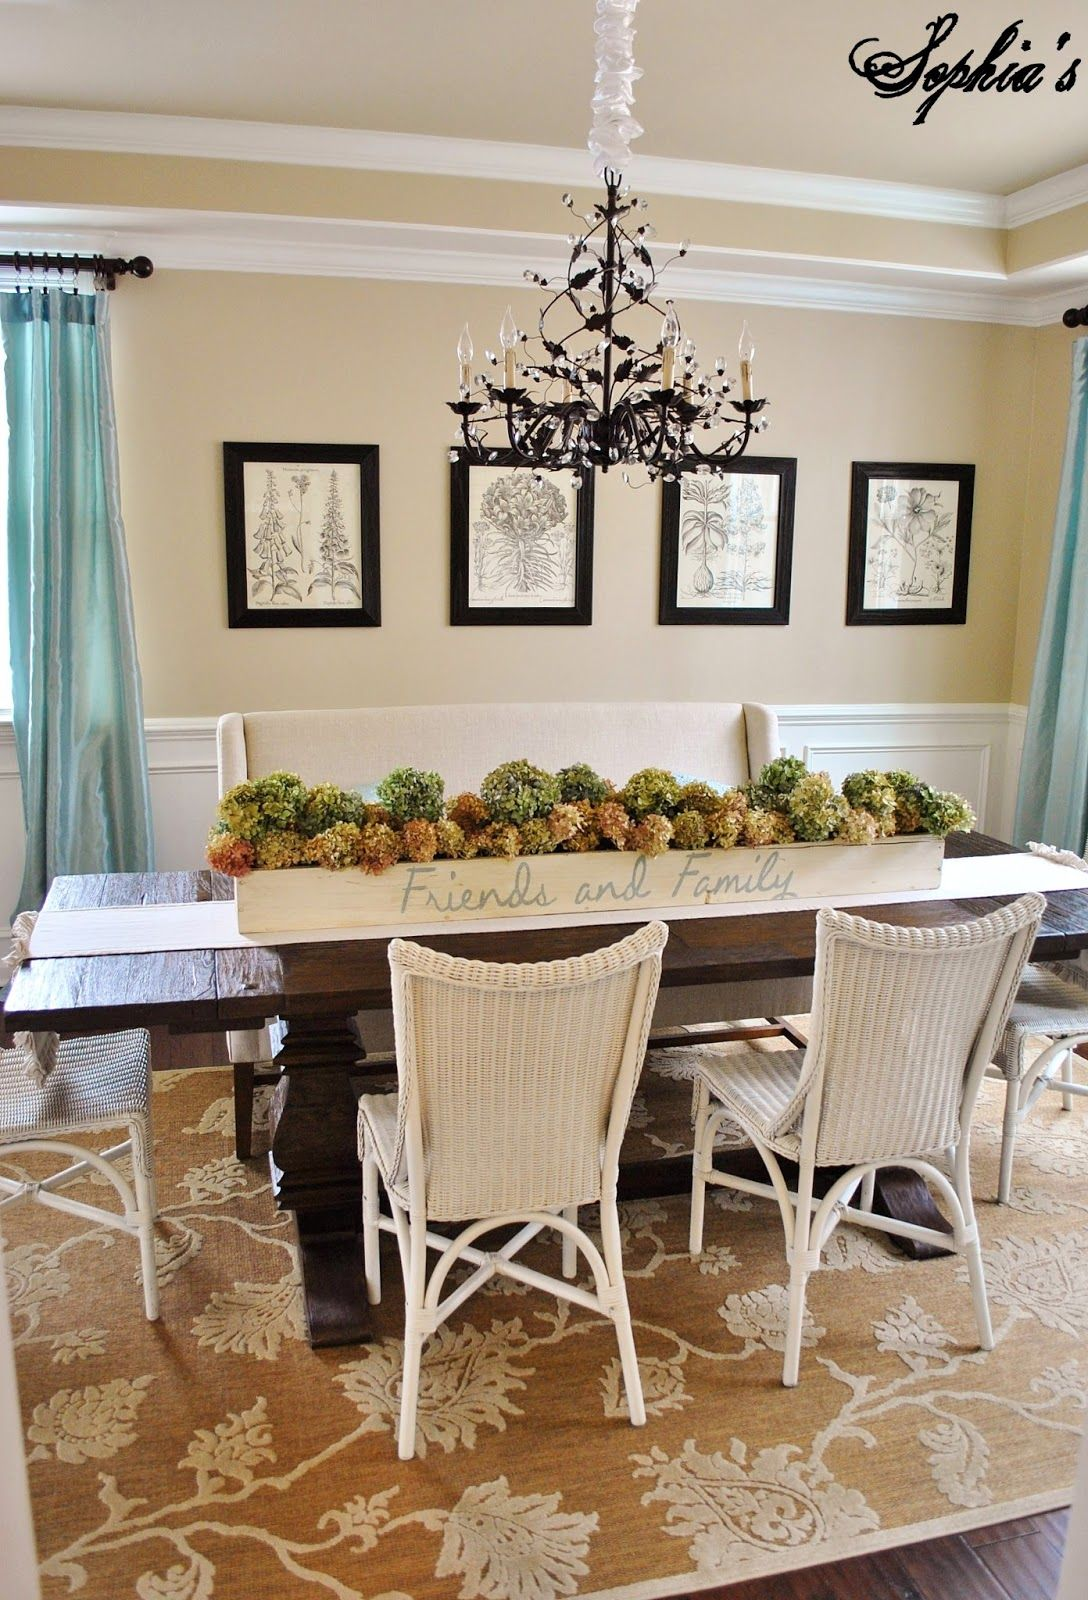 Loving Her Paint Colors And Style Esp Sherwin Williams Lotus